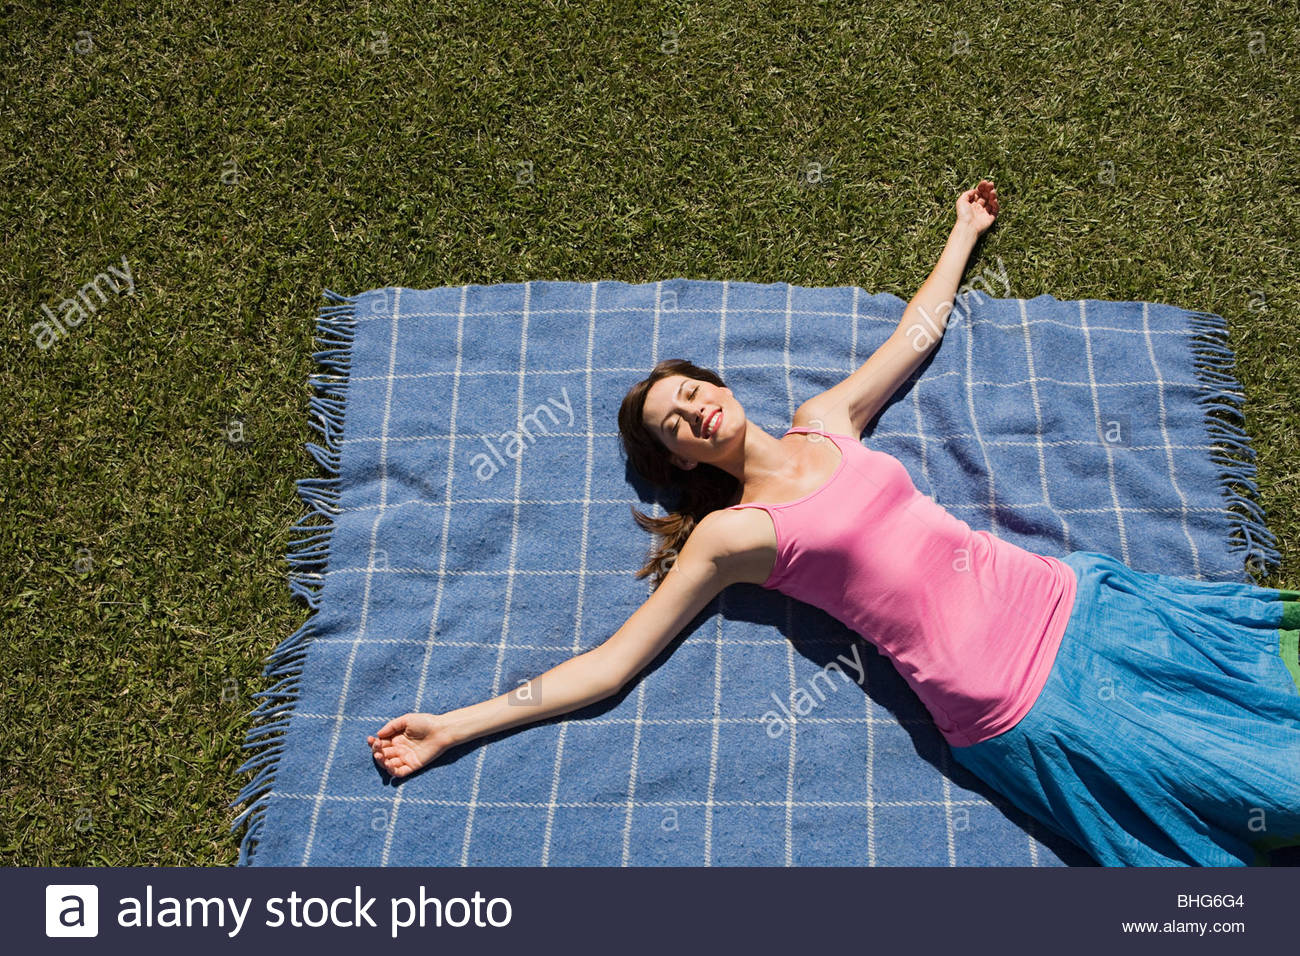 Woman lying on picnic blanket with arms outstretched Photo Stock